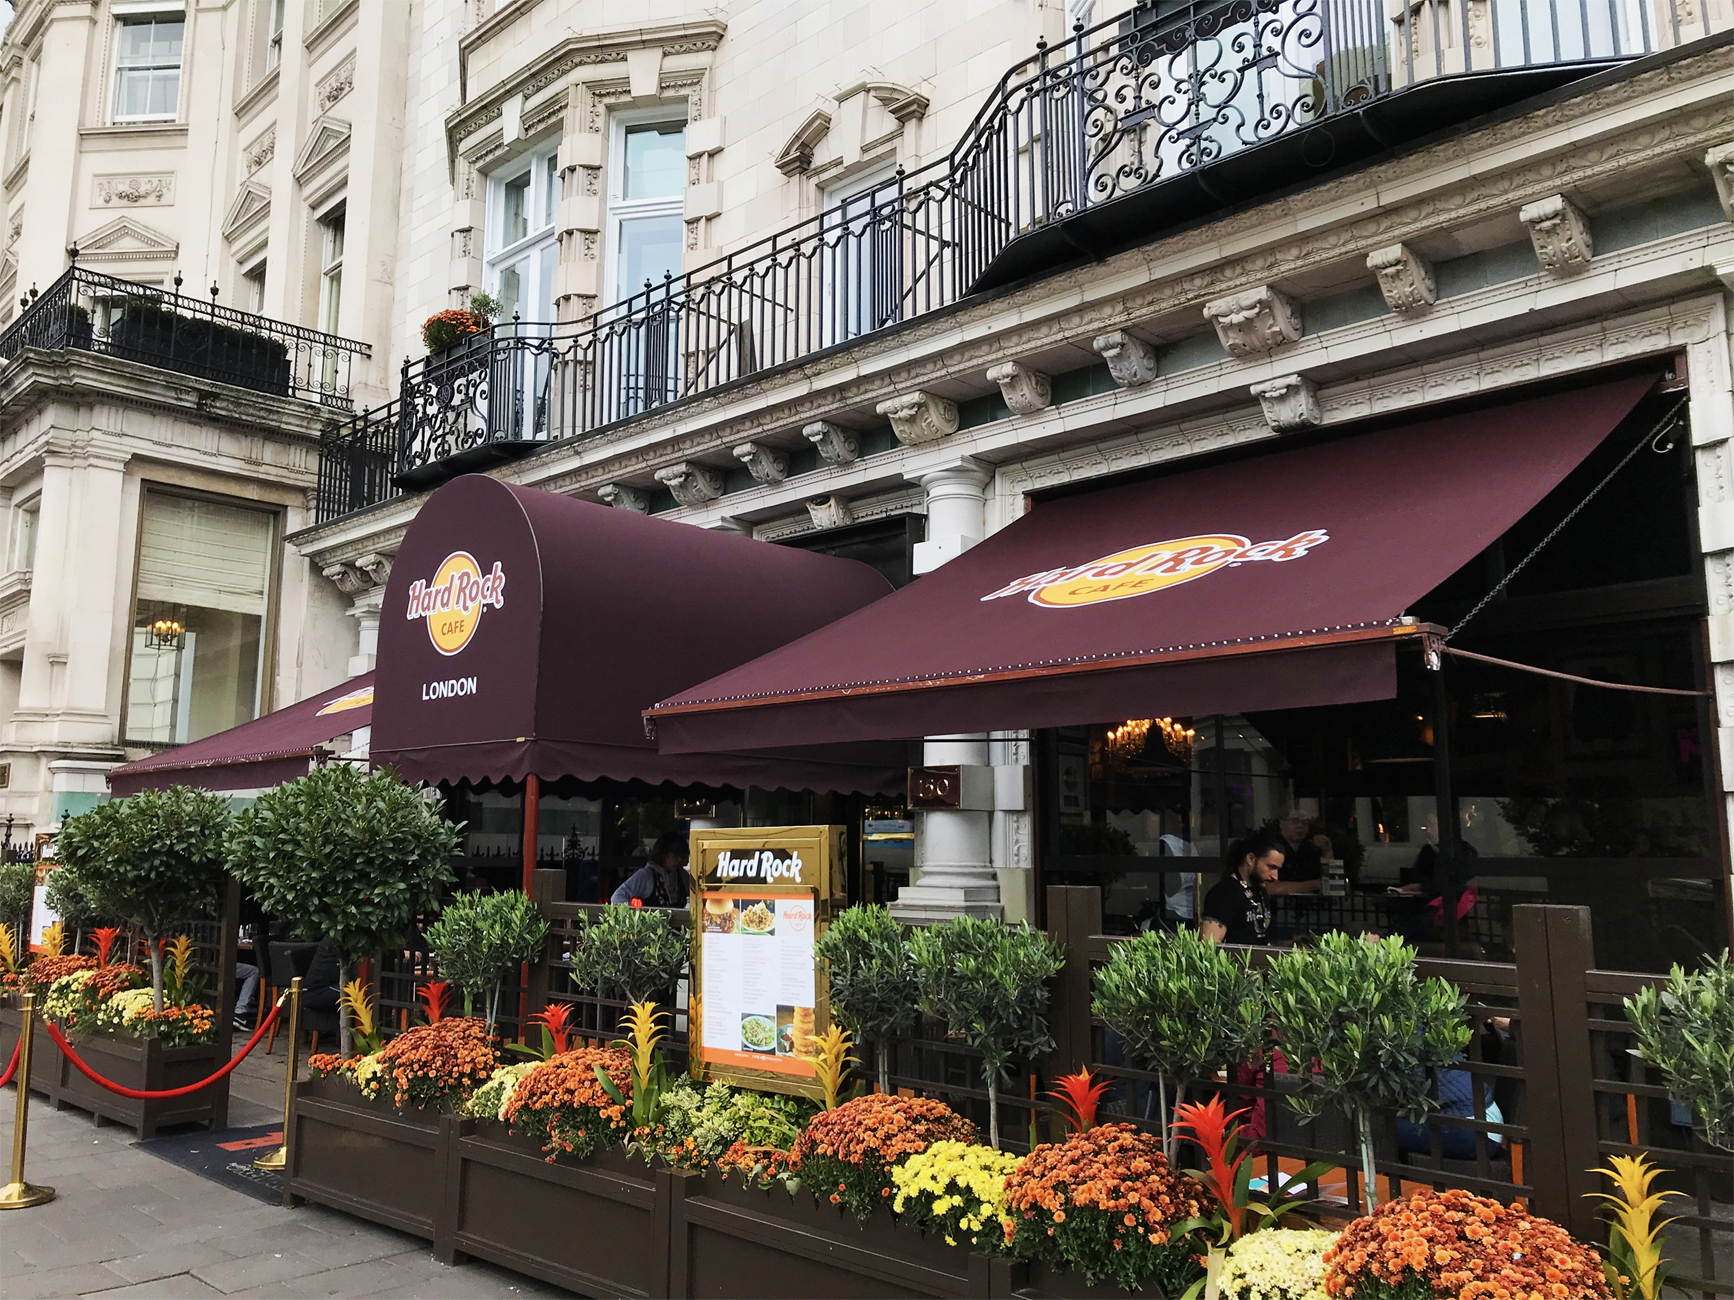 Awnings Hard Rock Cafe